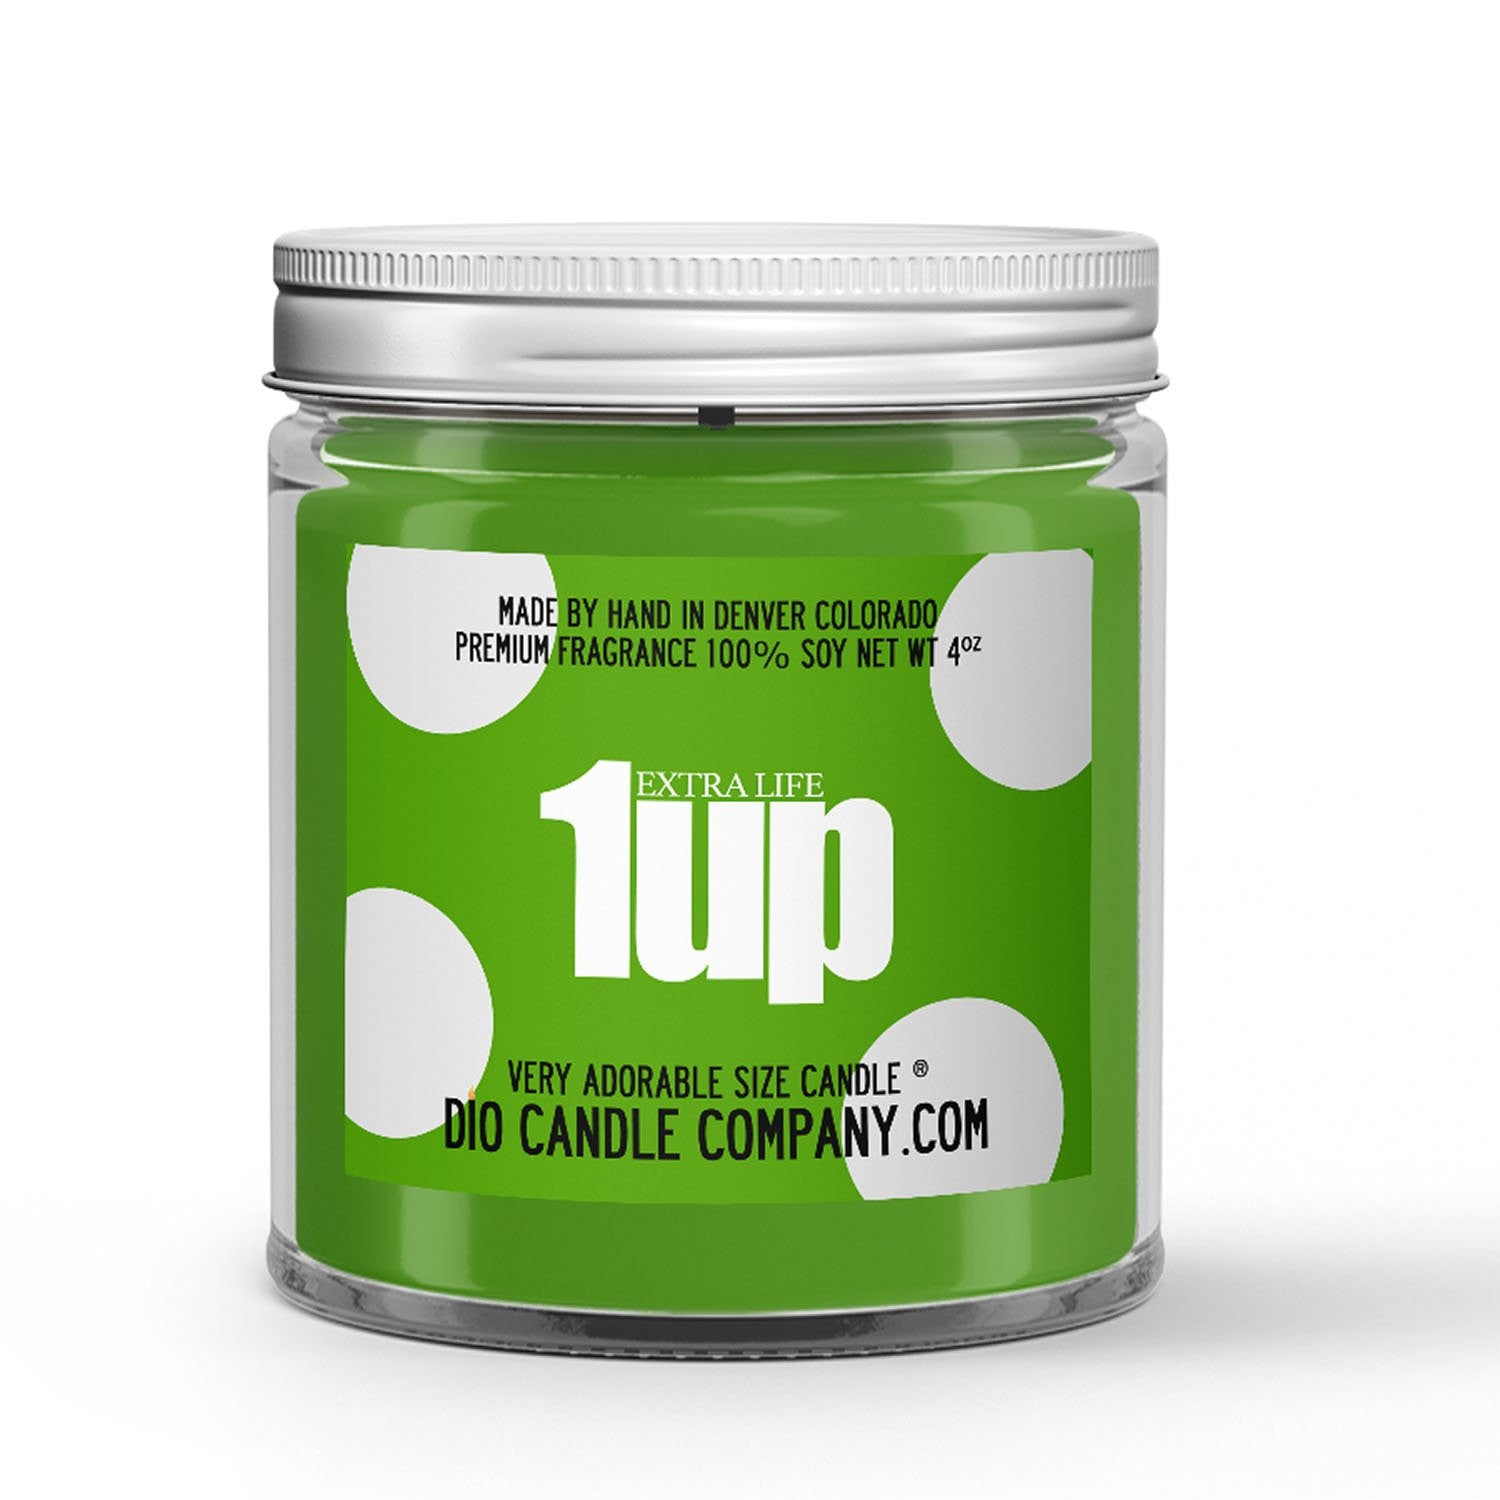 1 Up Extra Life Gaming Candle Banana - Grapefruit Scented - Dio Candle Company